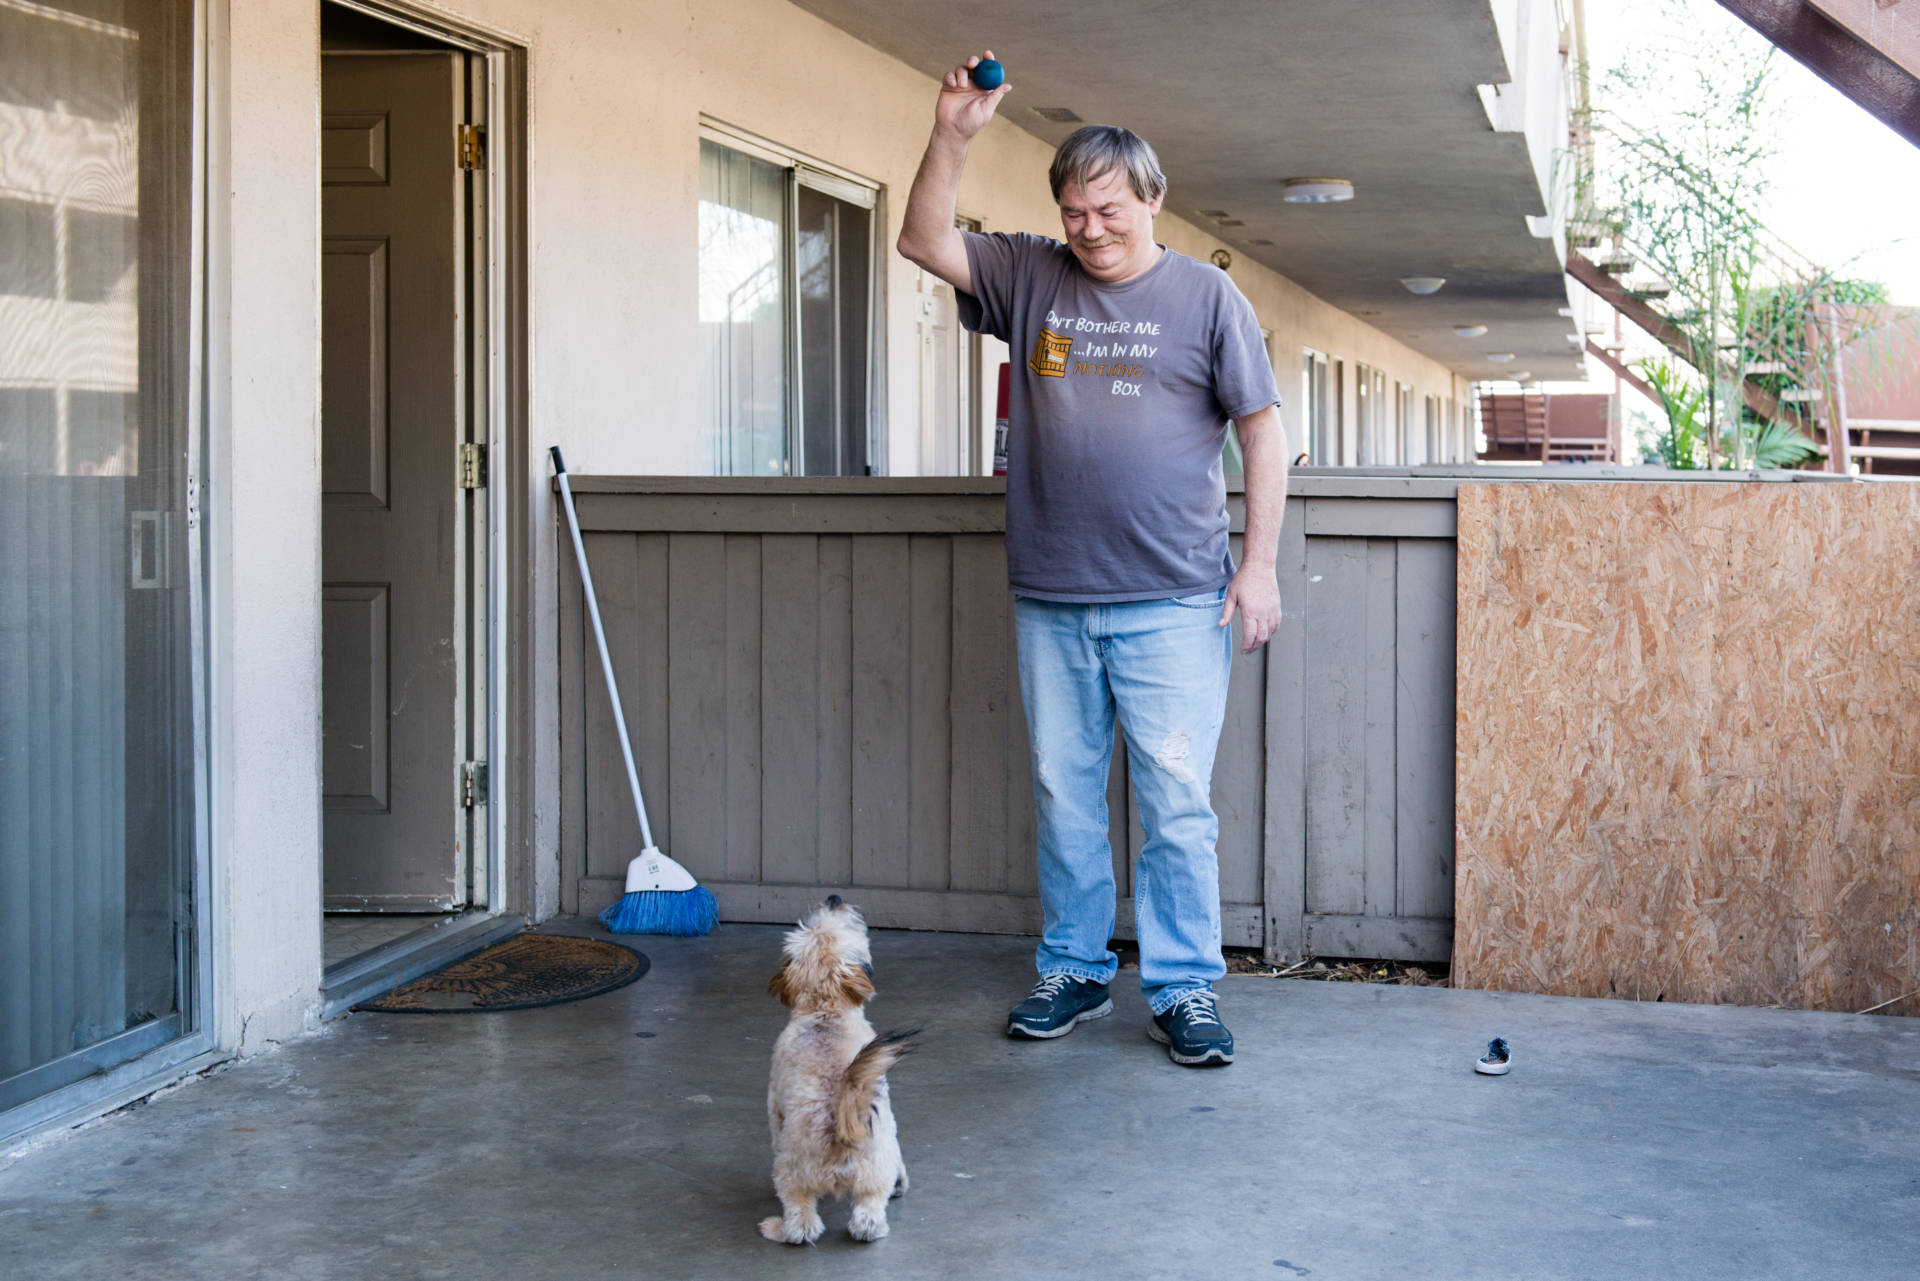 Donald Meade plays with his puppy, Scrappy, at his new apartment in Fullerton, Calif.